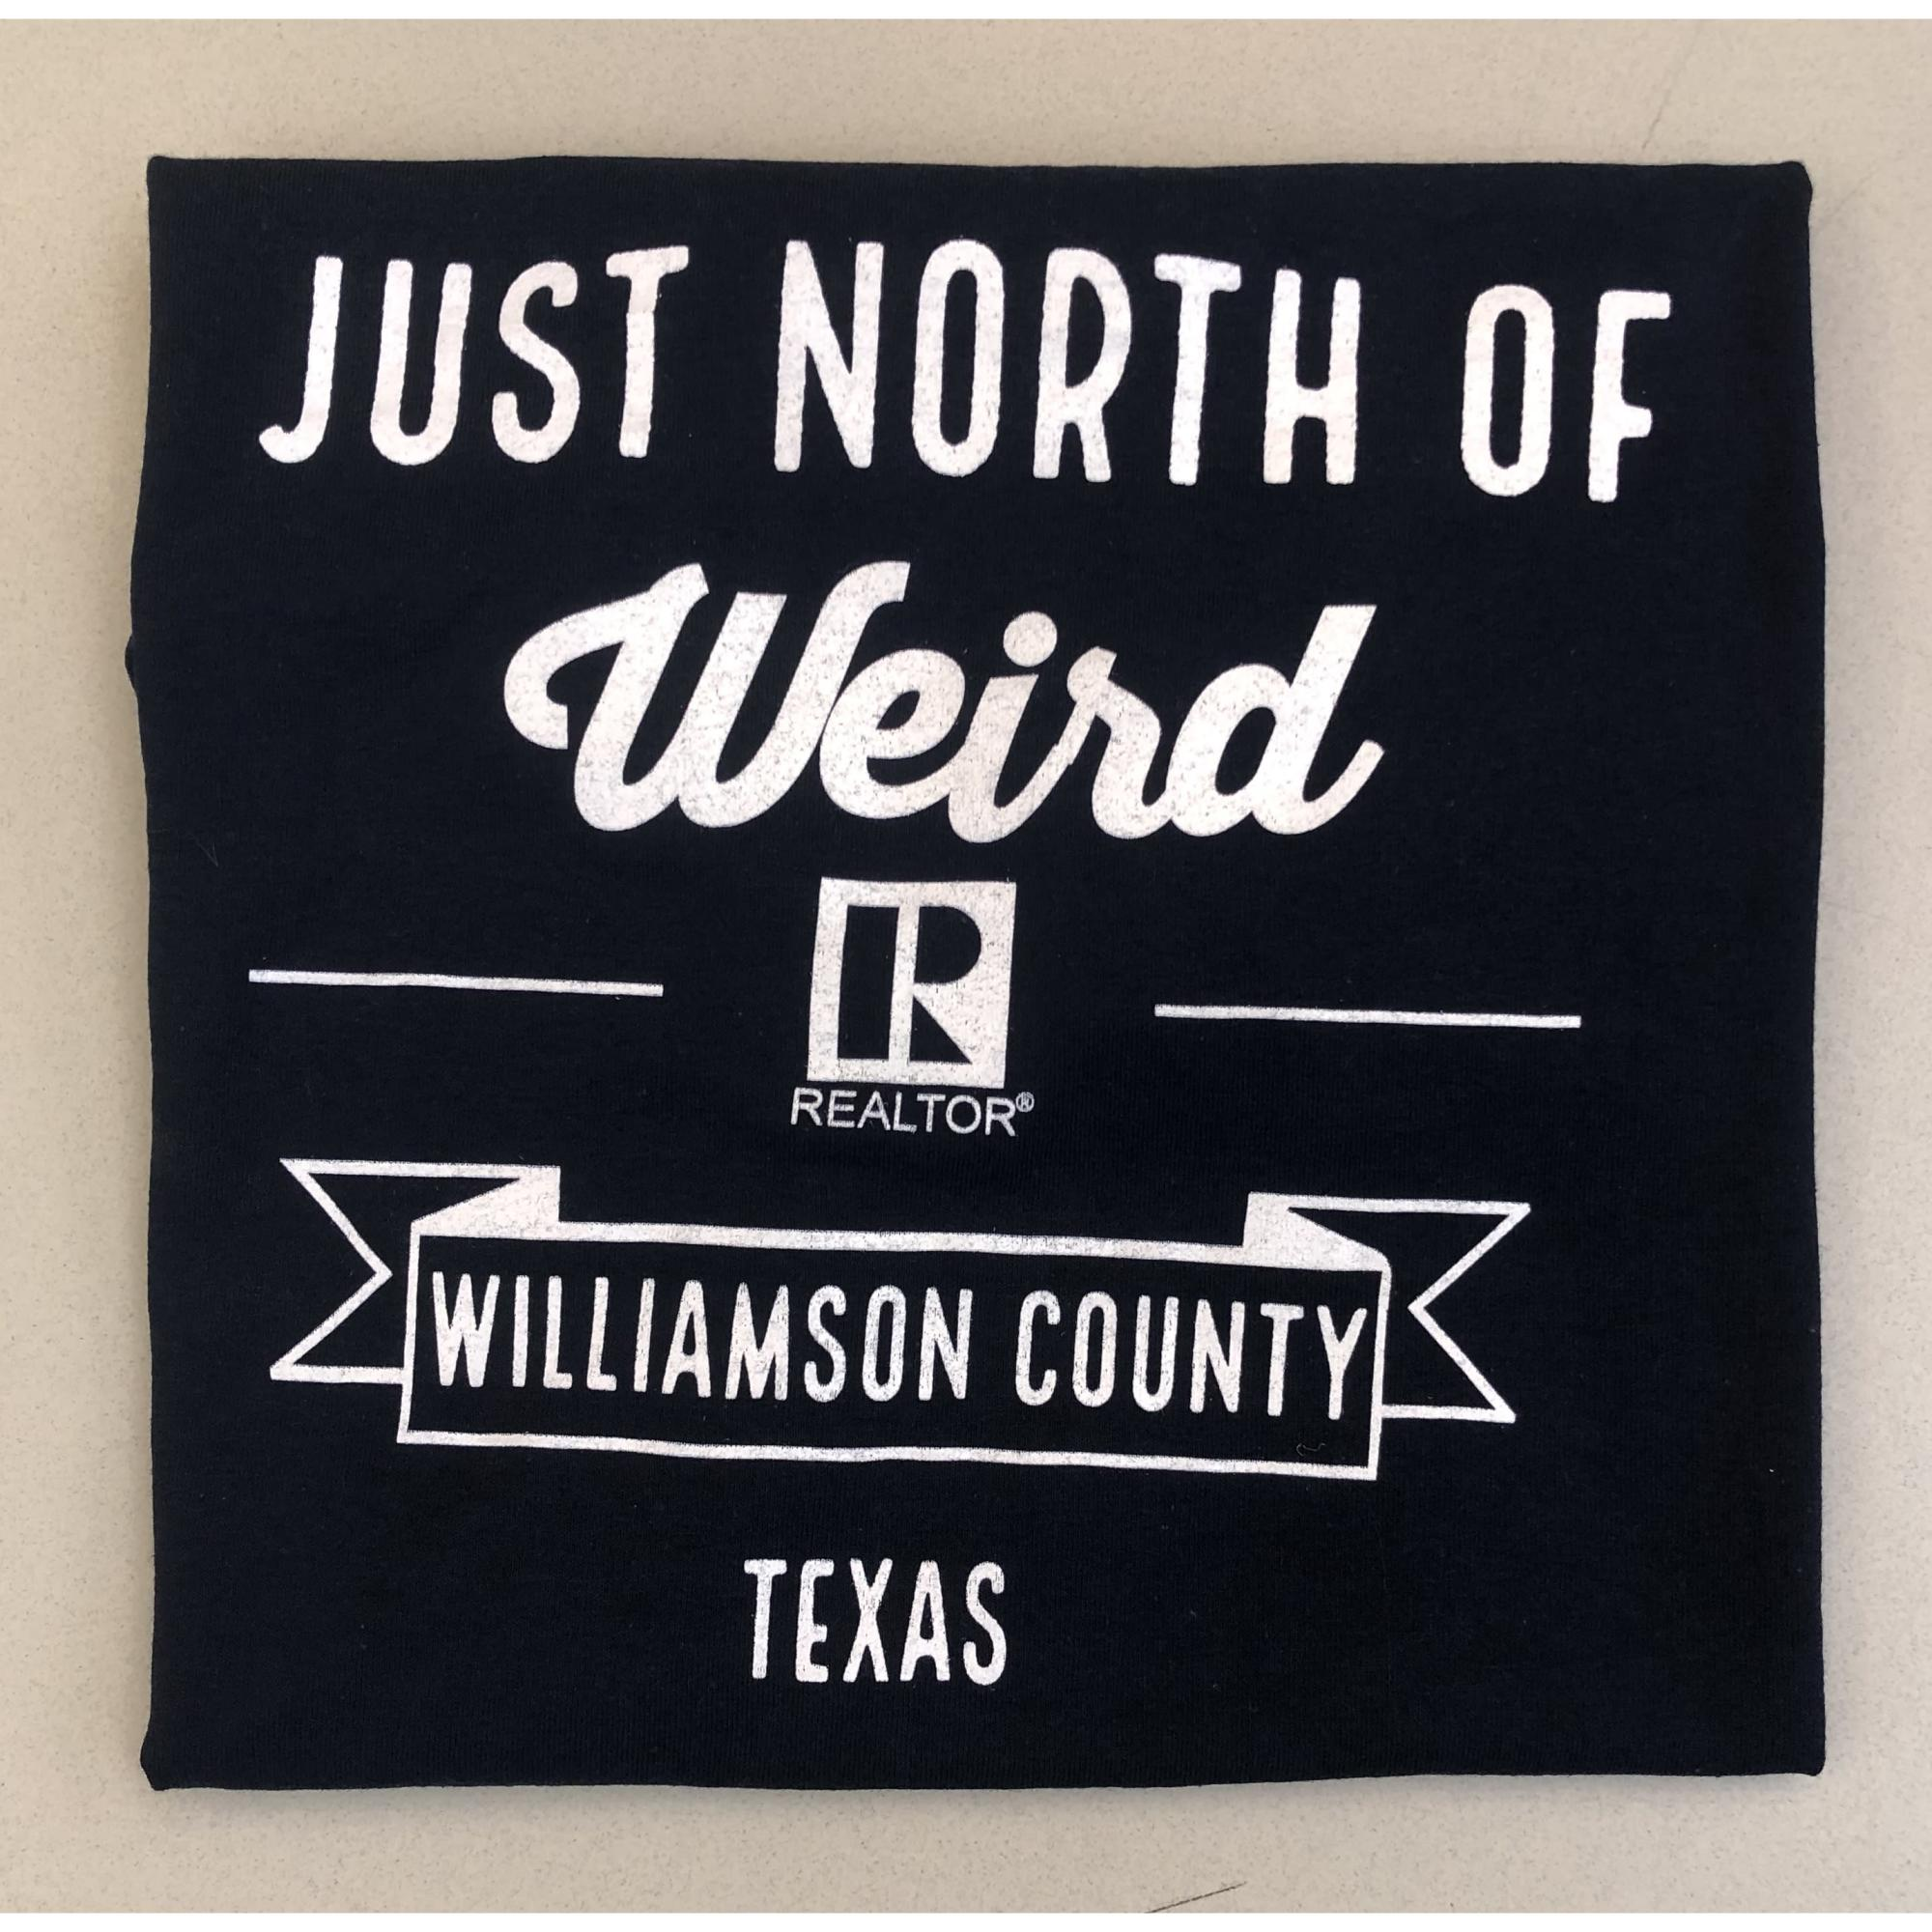 Just North of Weird NAVY REALTOR® Crew-Neck provided by WCREALTORS